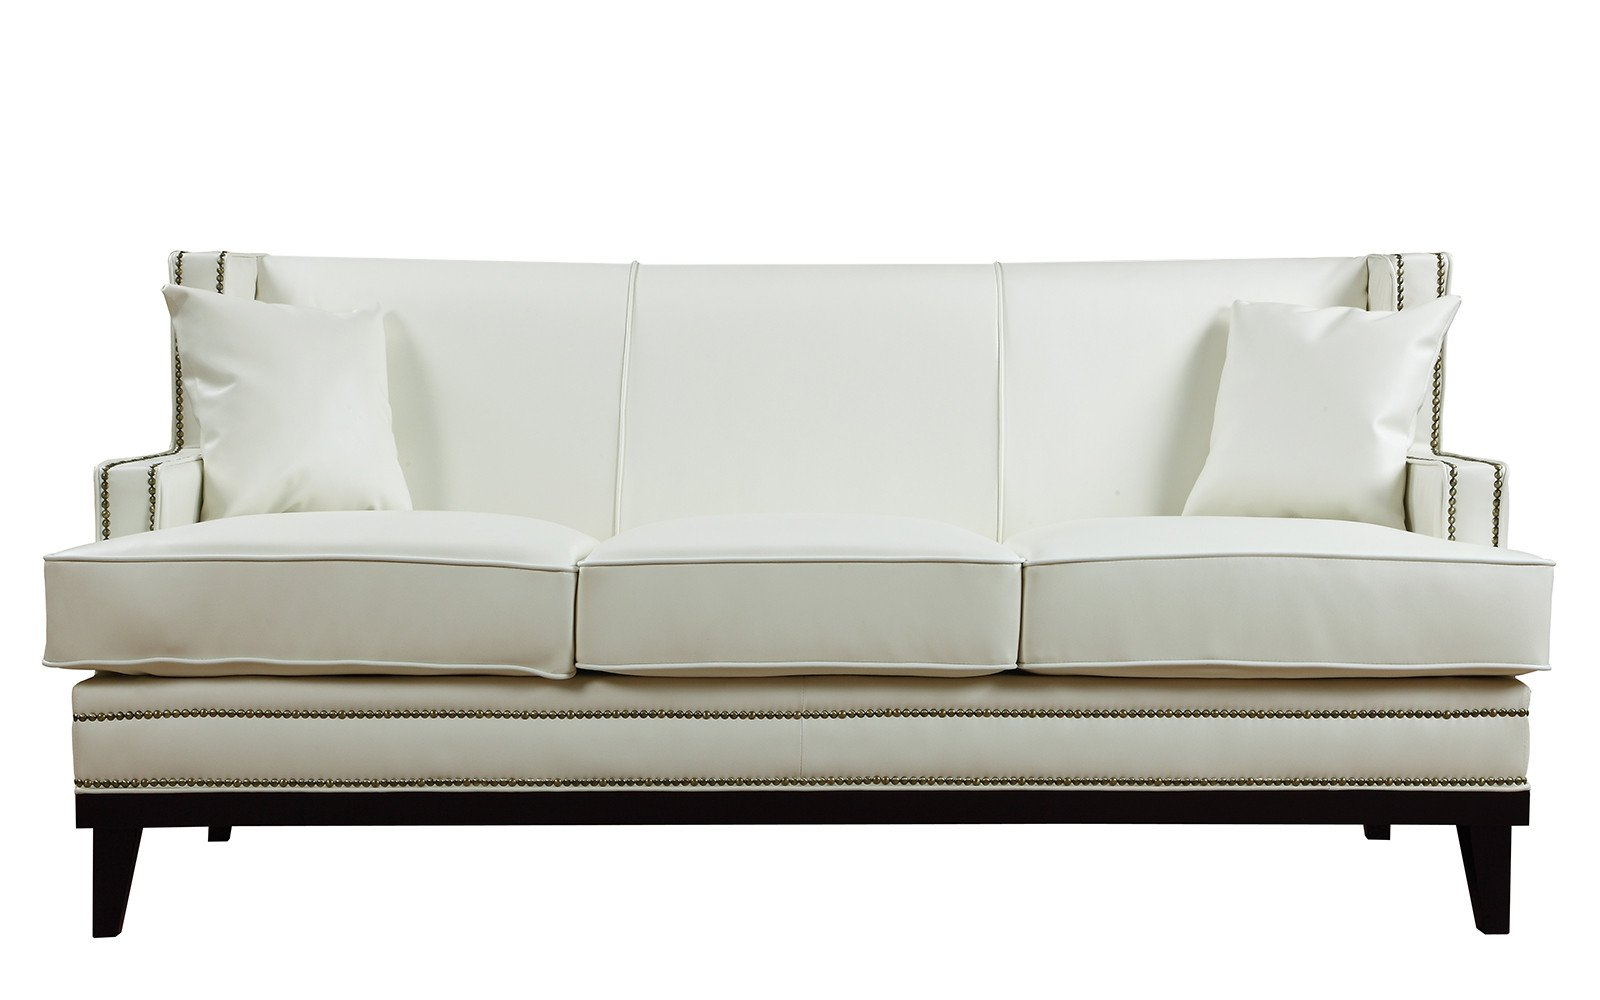 Abe Old Hollywood Nailhead Trim Bonded Leather Sofa Best Leather Sofa Leather Sectional Sofas Sofa Deals